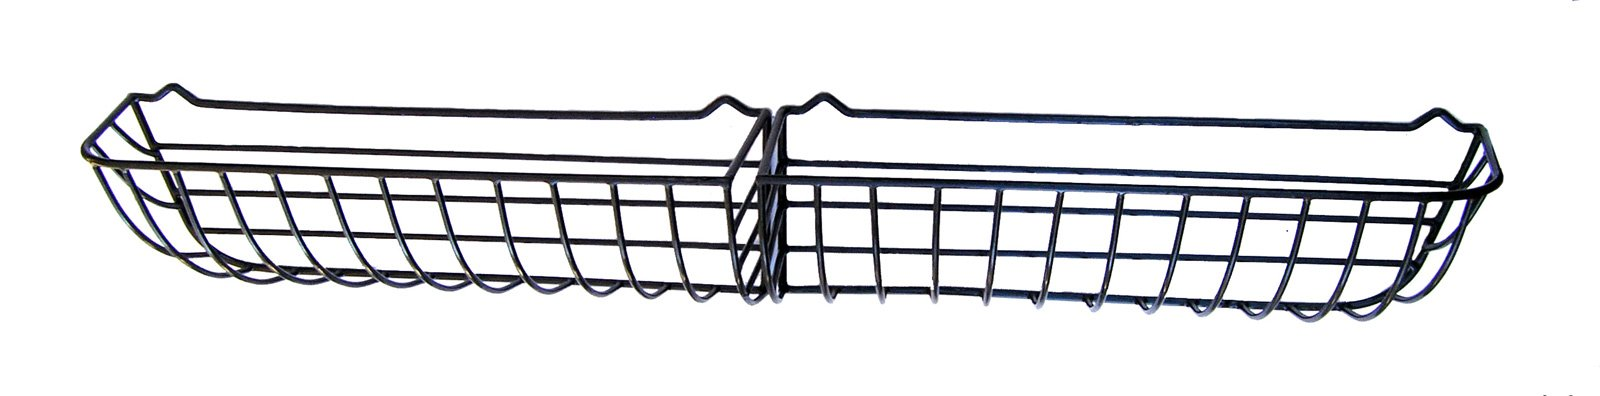 72'' Sectional Wrought Iron Window Hayrack coated in black PVC